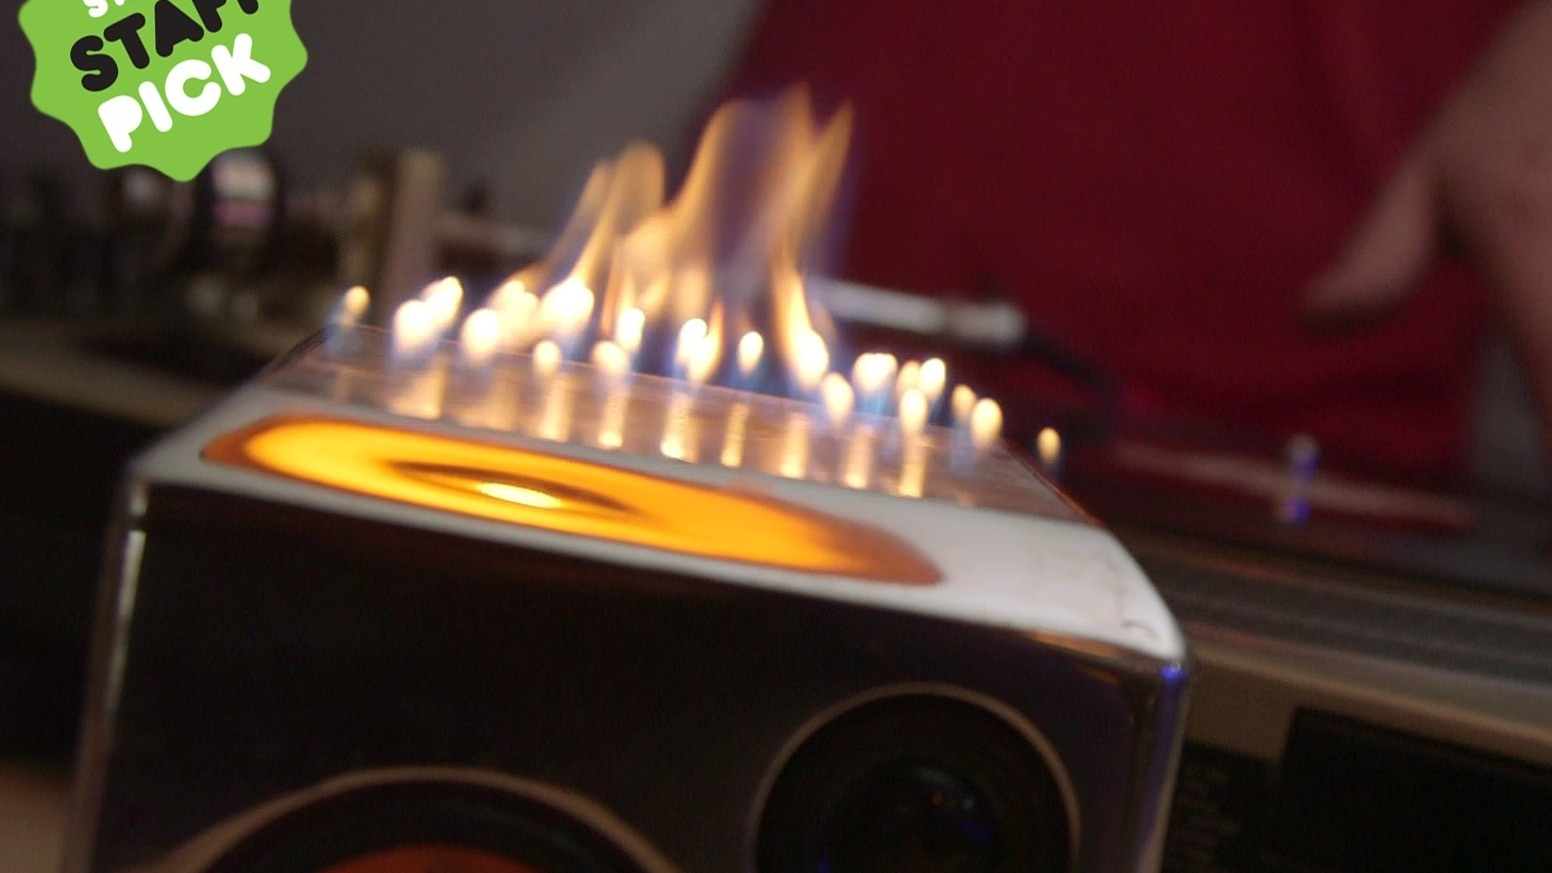 Like fire? LOVE music? Now you can combine the two! Introducing: The Sound Torch - world's FIRST affordable PyroBoard